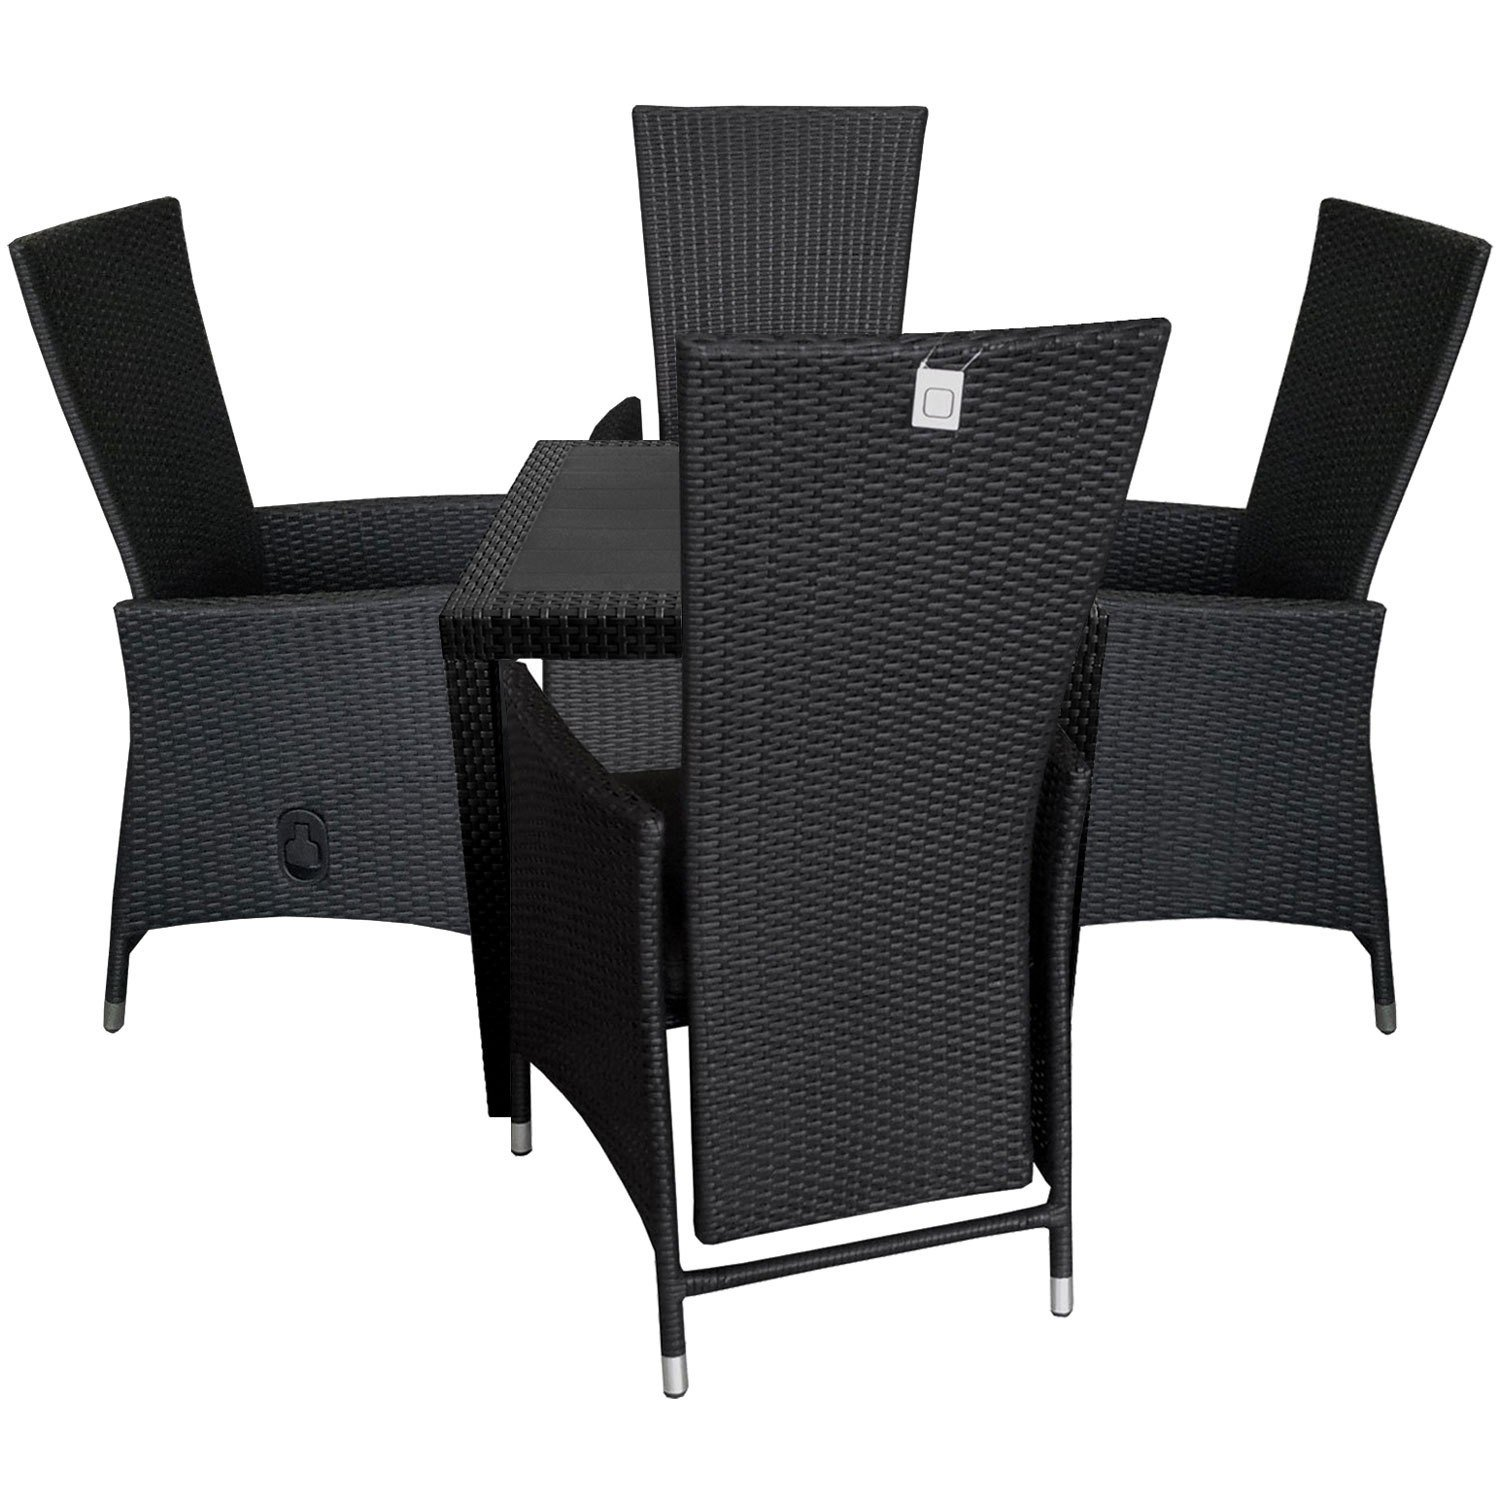 5tlg terrassenm bel set kunststoff gartentisch rattan look 79x79cm 4x poly rattan sessel. Black Bedroom Furniture Sets. Home Design Ideas